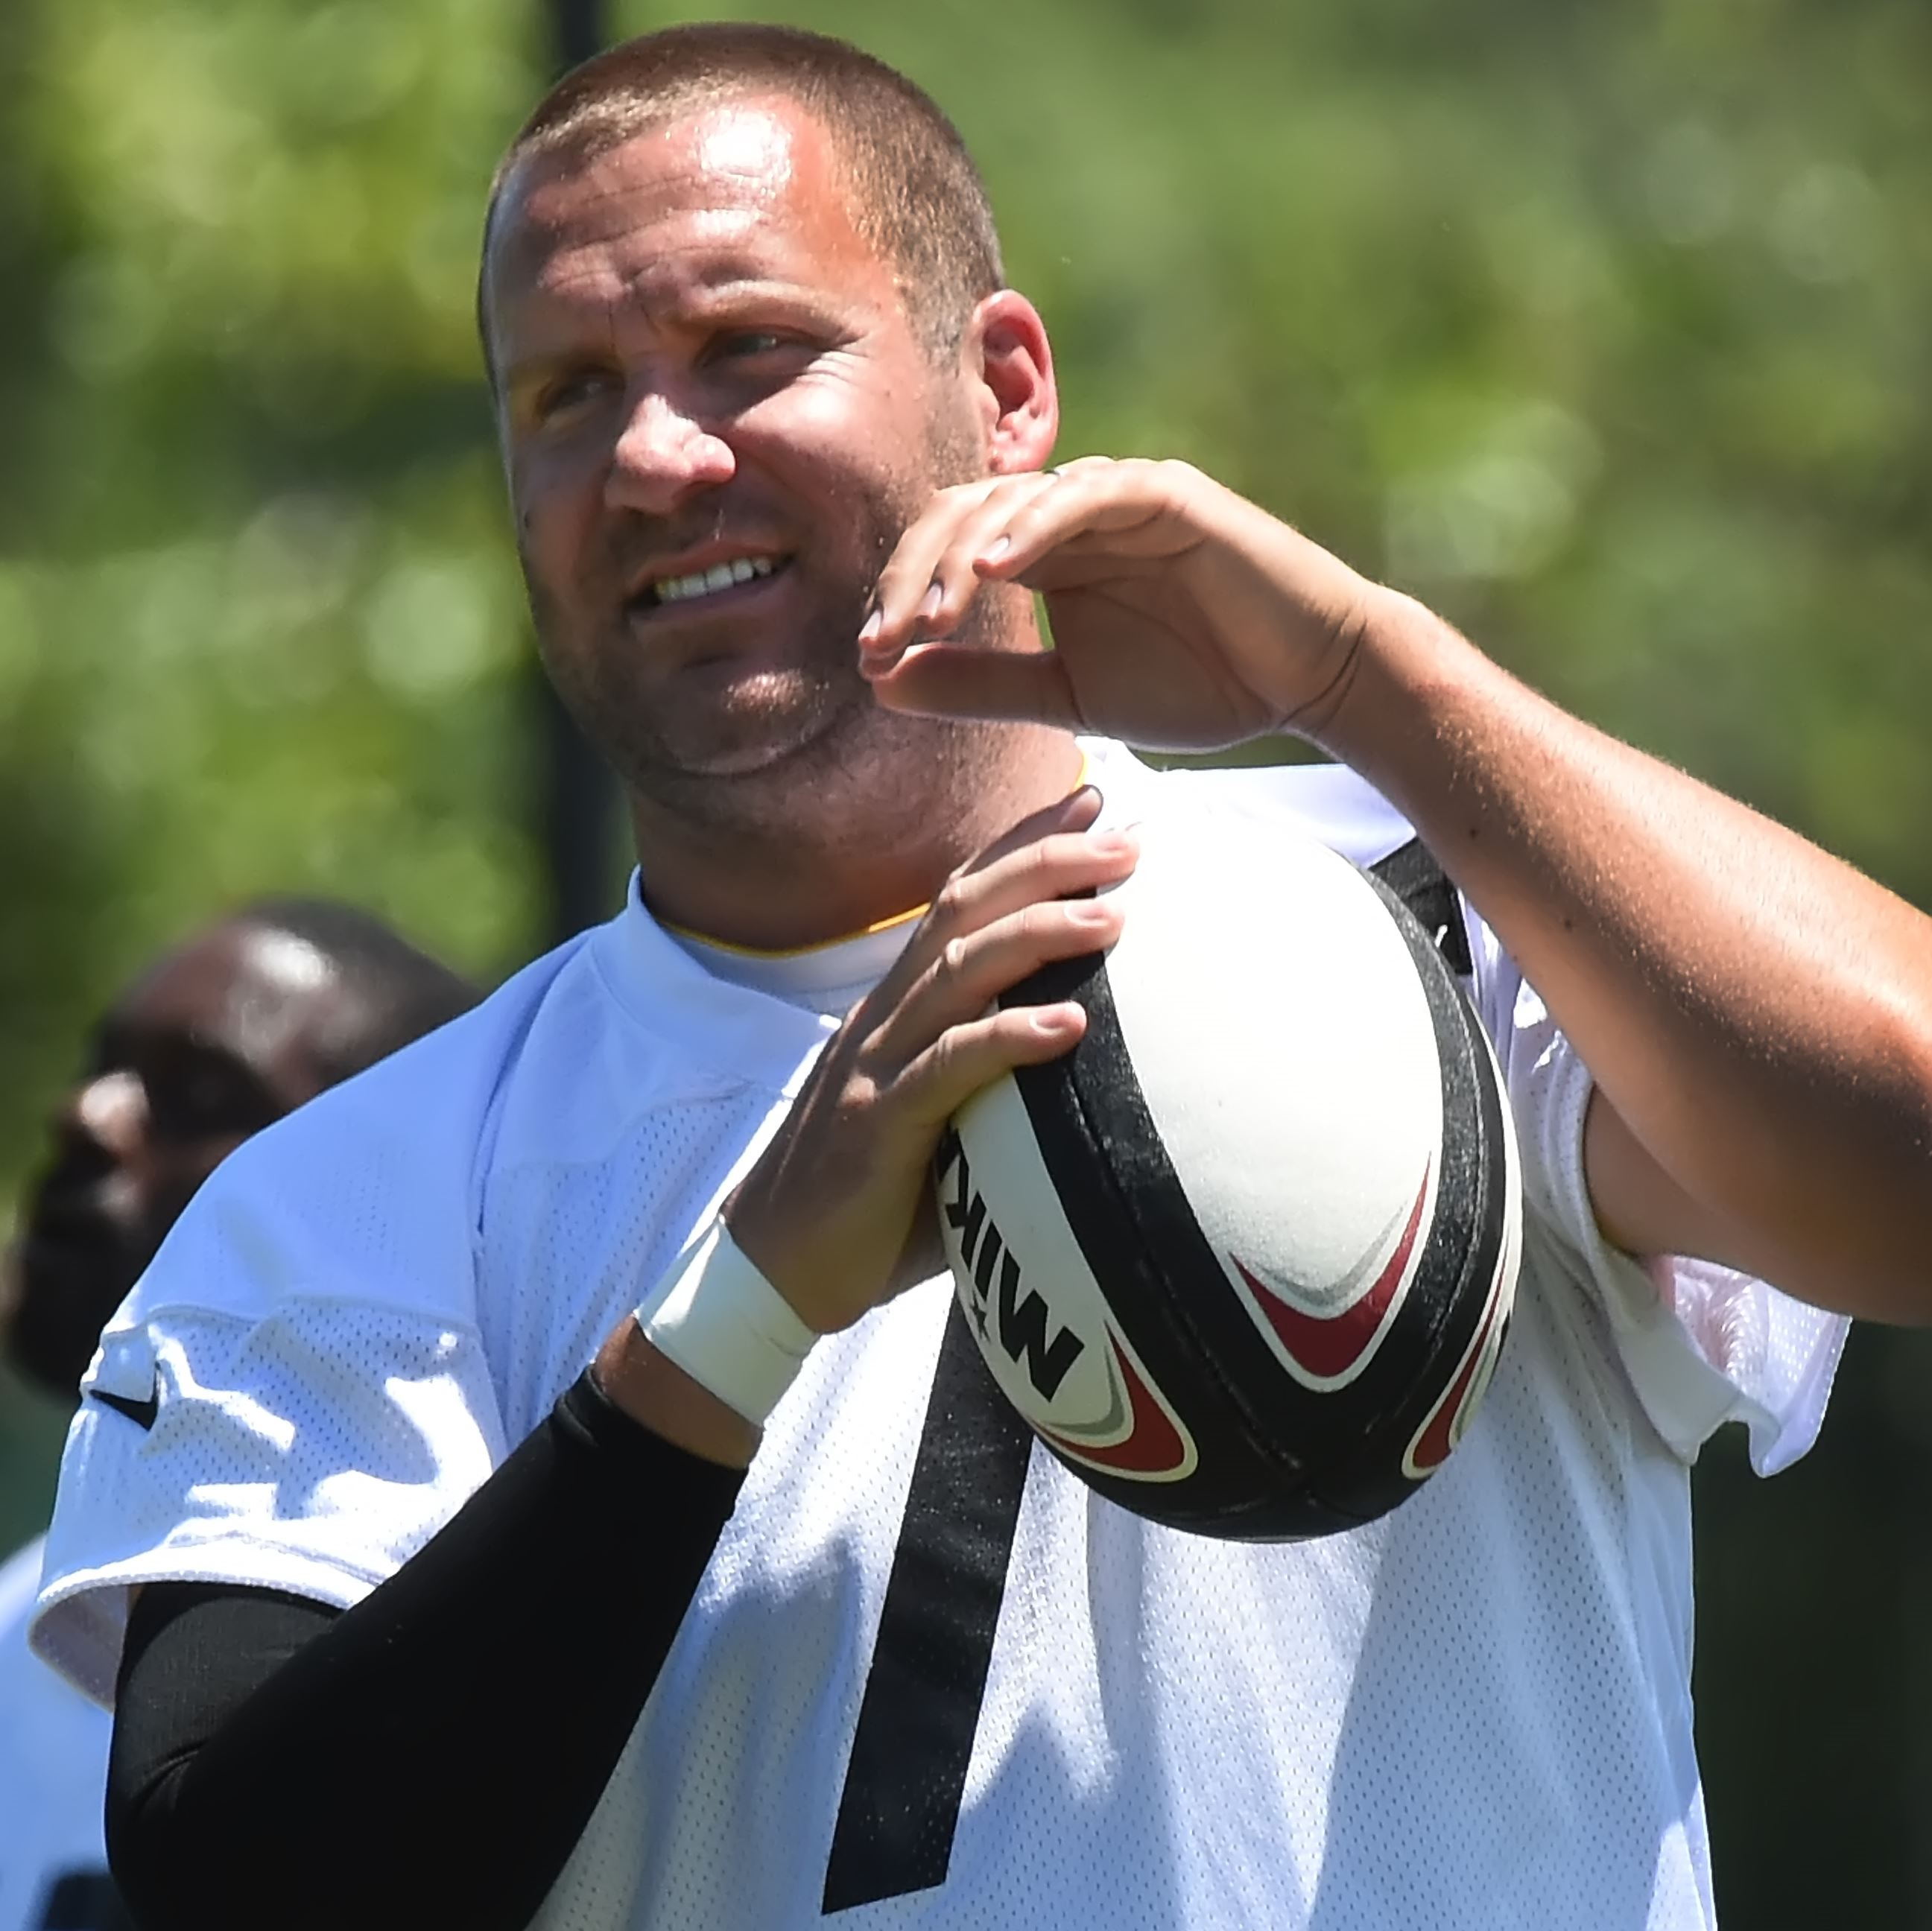 Steelers notebook: Roethlisberger's preference? Go for two